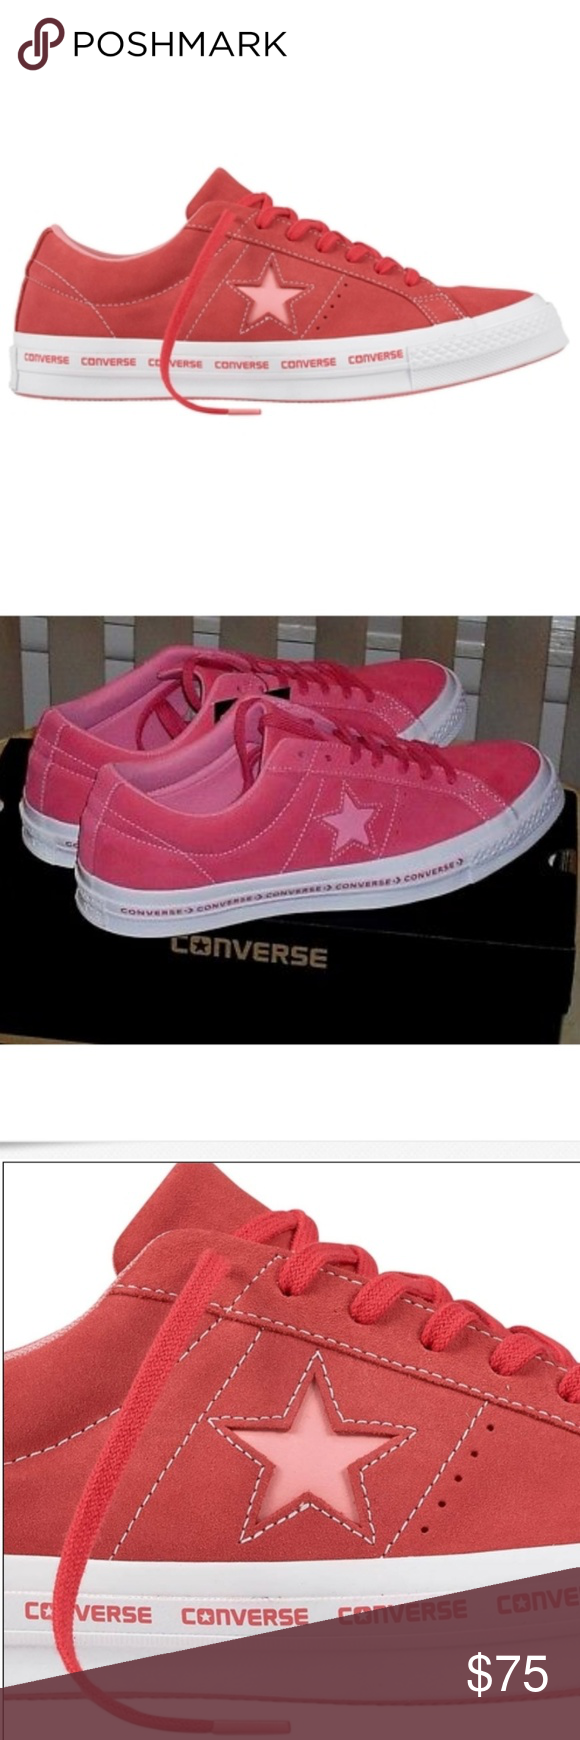 db9c4332f4e0 Converse Men s One Star Pinstripe Low Top Shoes Color  PARADISE PINK GERANIUM  PINK With a premium suede upper and iconic One Star profile